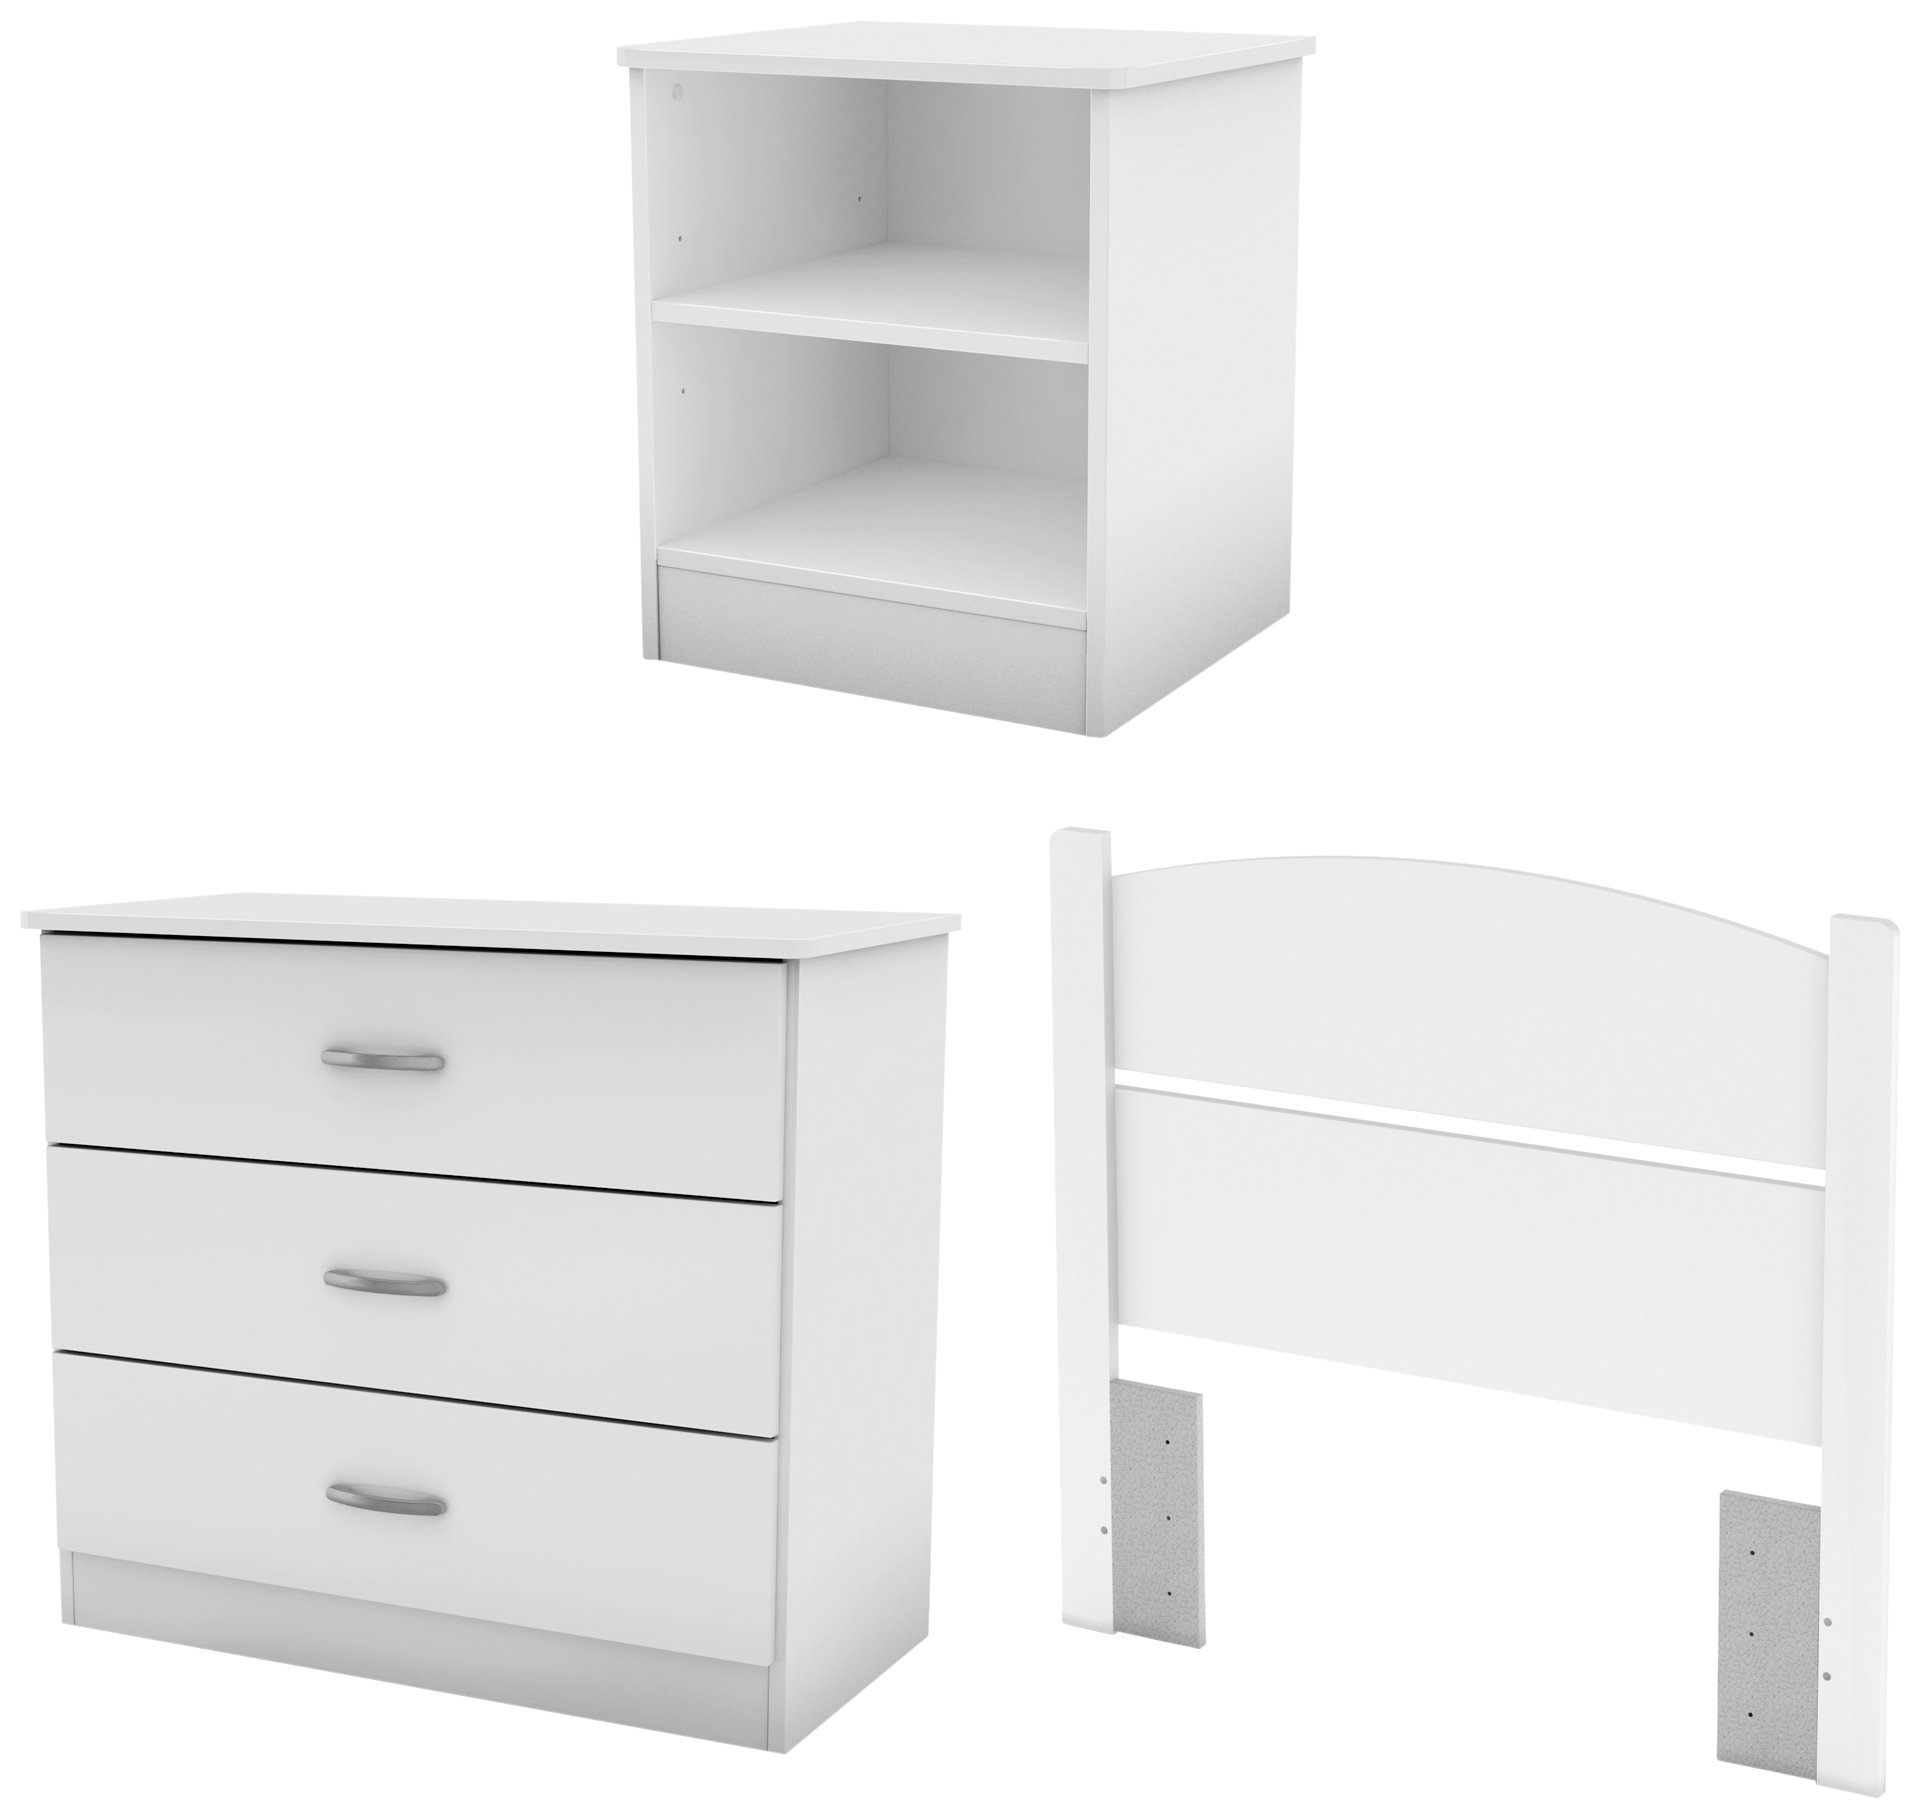 South Shore Libra 3-Piece Bedroom Set with Dresser, Nightstand, and Twin Headboard, Pure White by South Shore